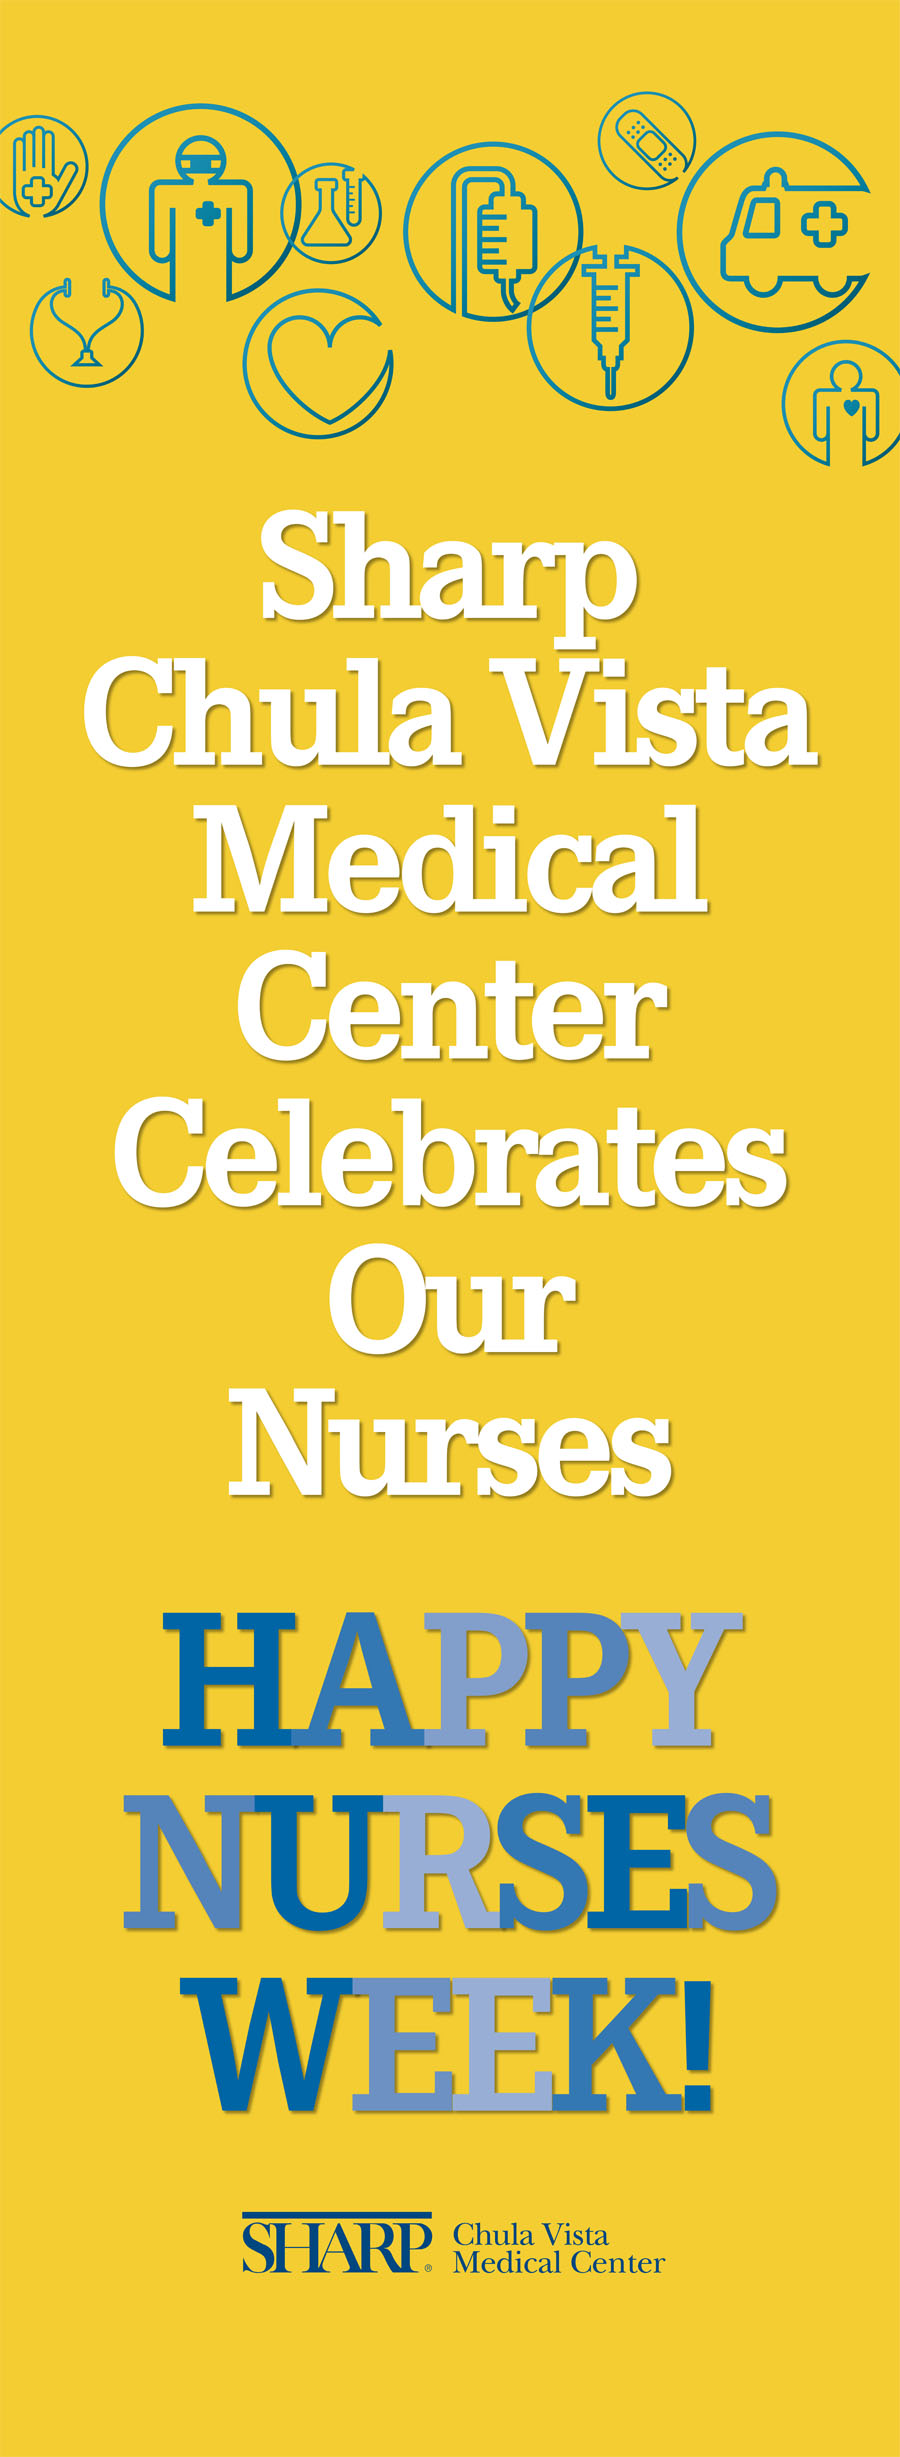 Nurses Week Banner Final Outlines.jpg